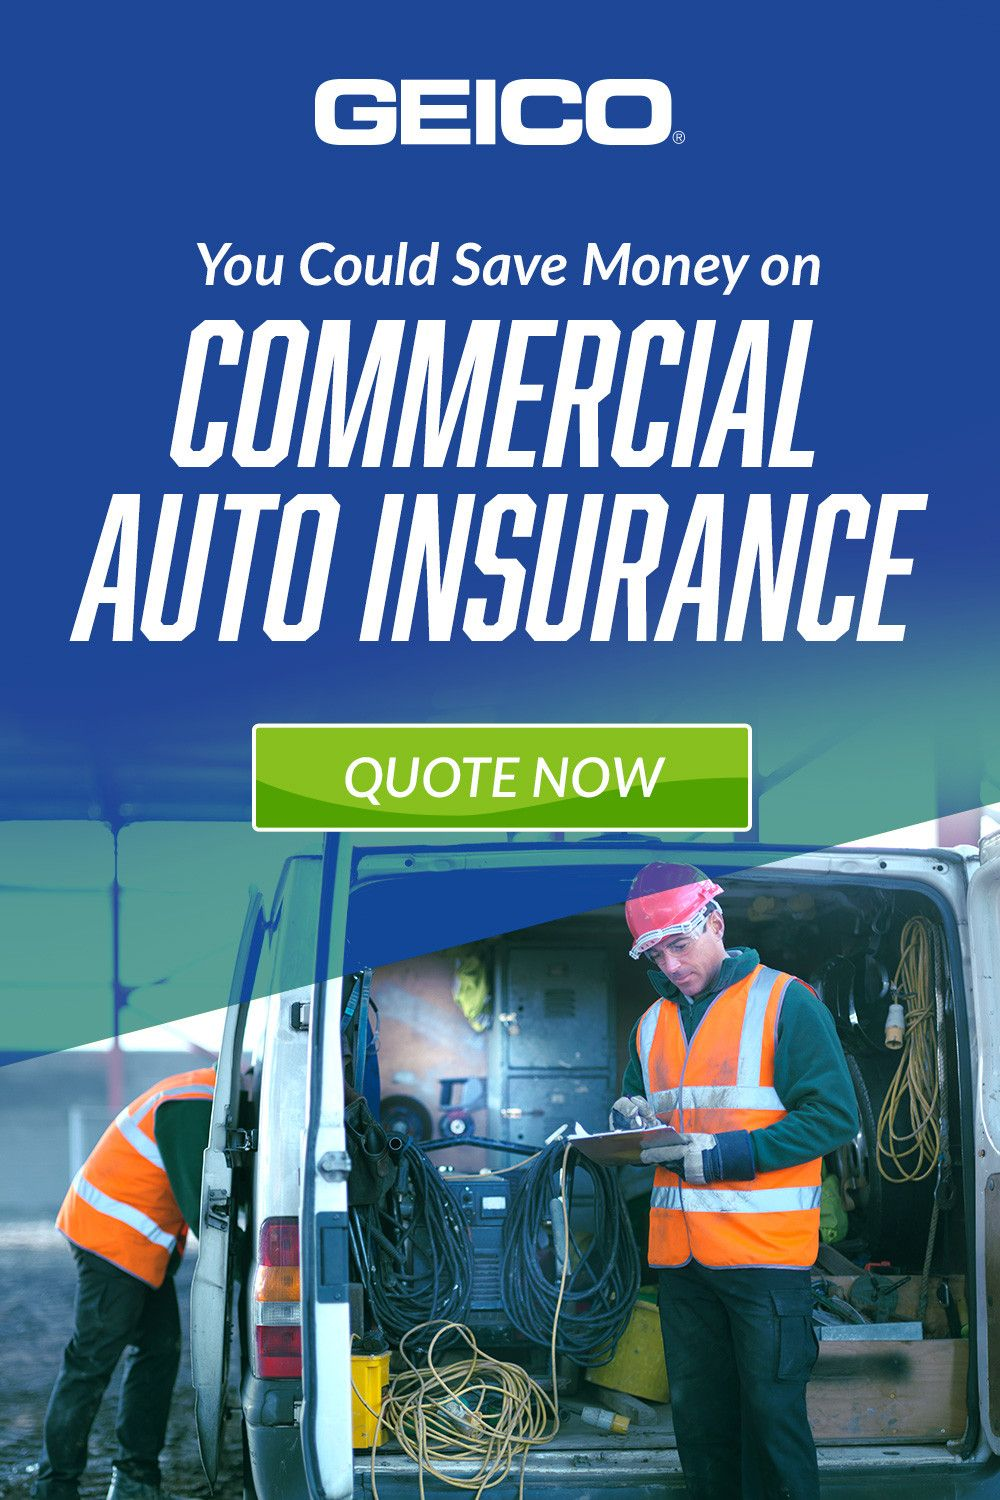 Get a quote and see how much you could save on insurance